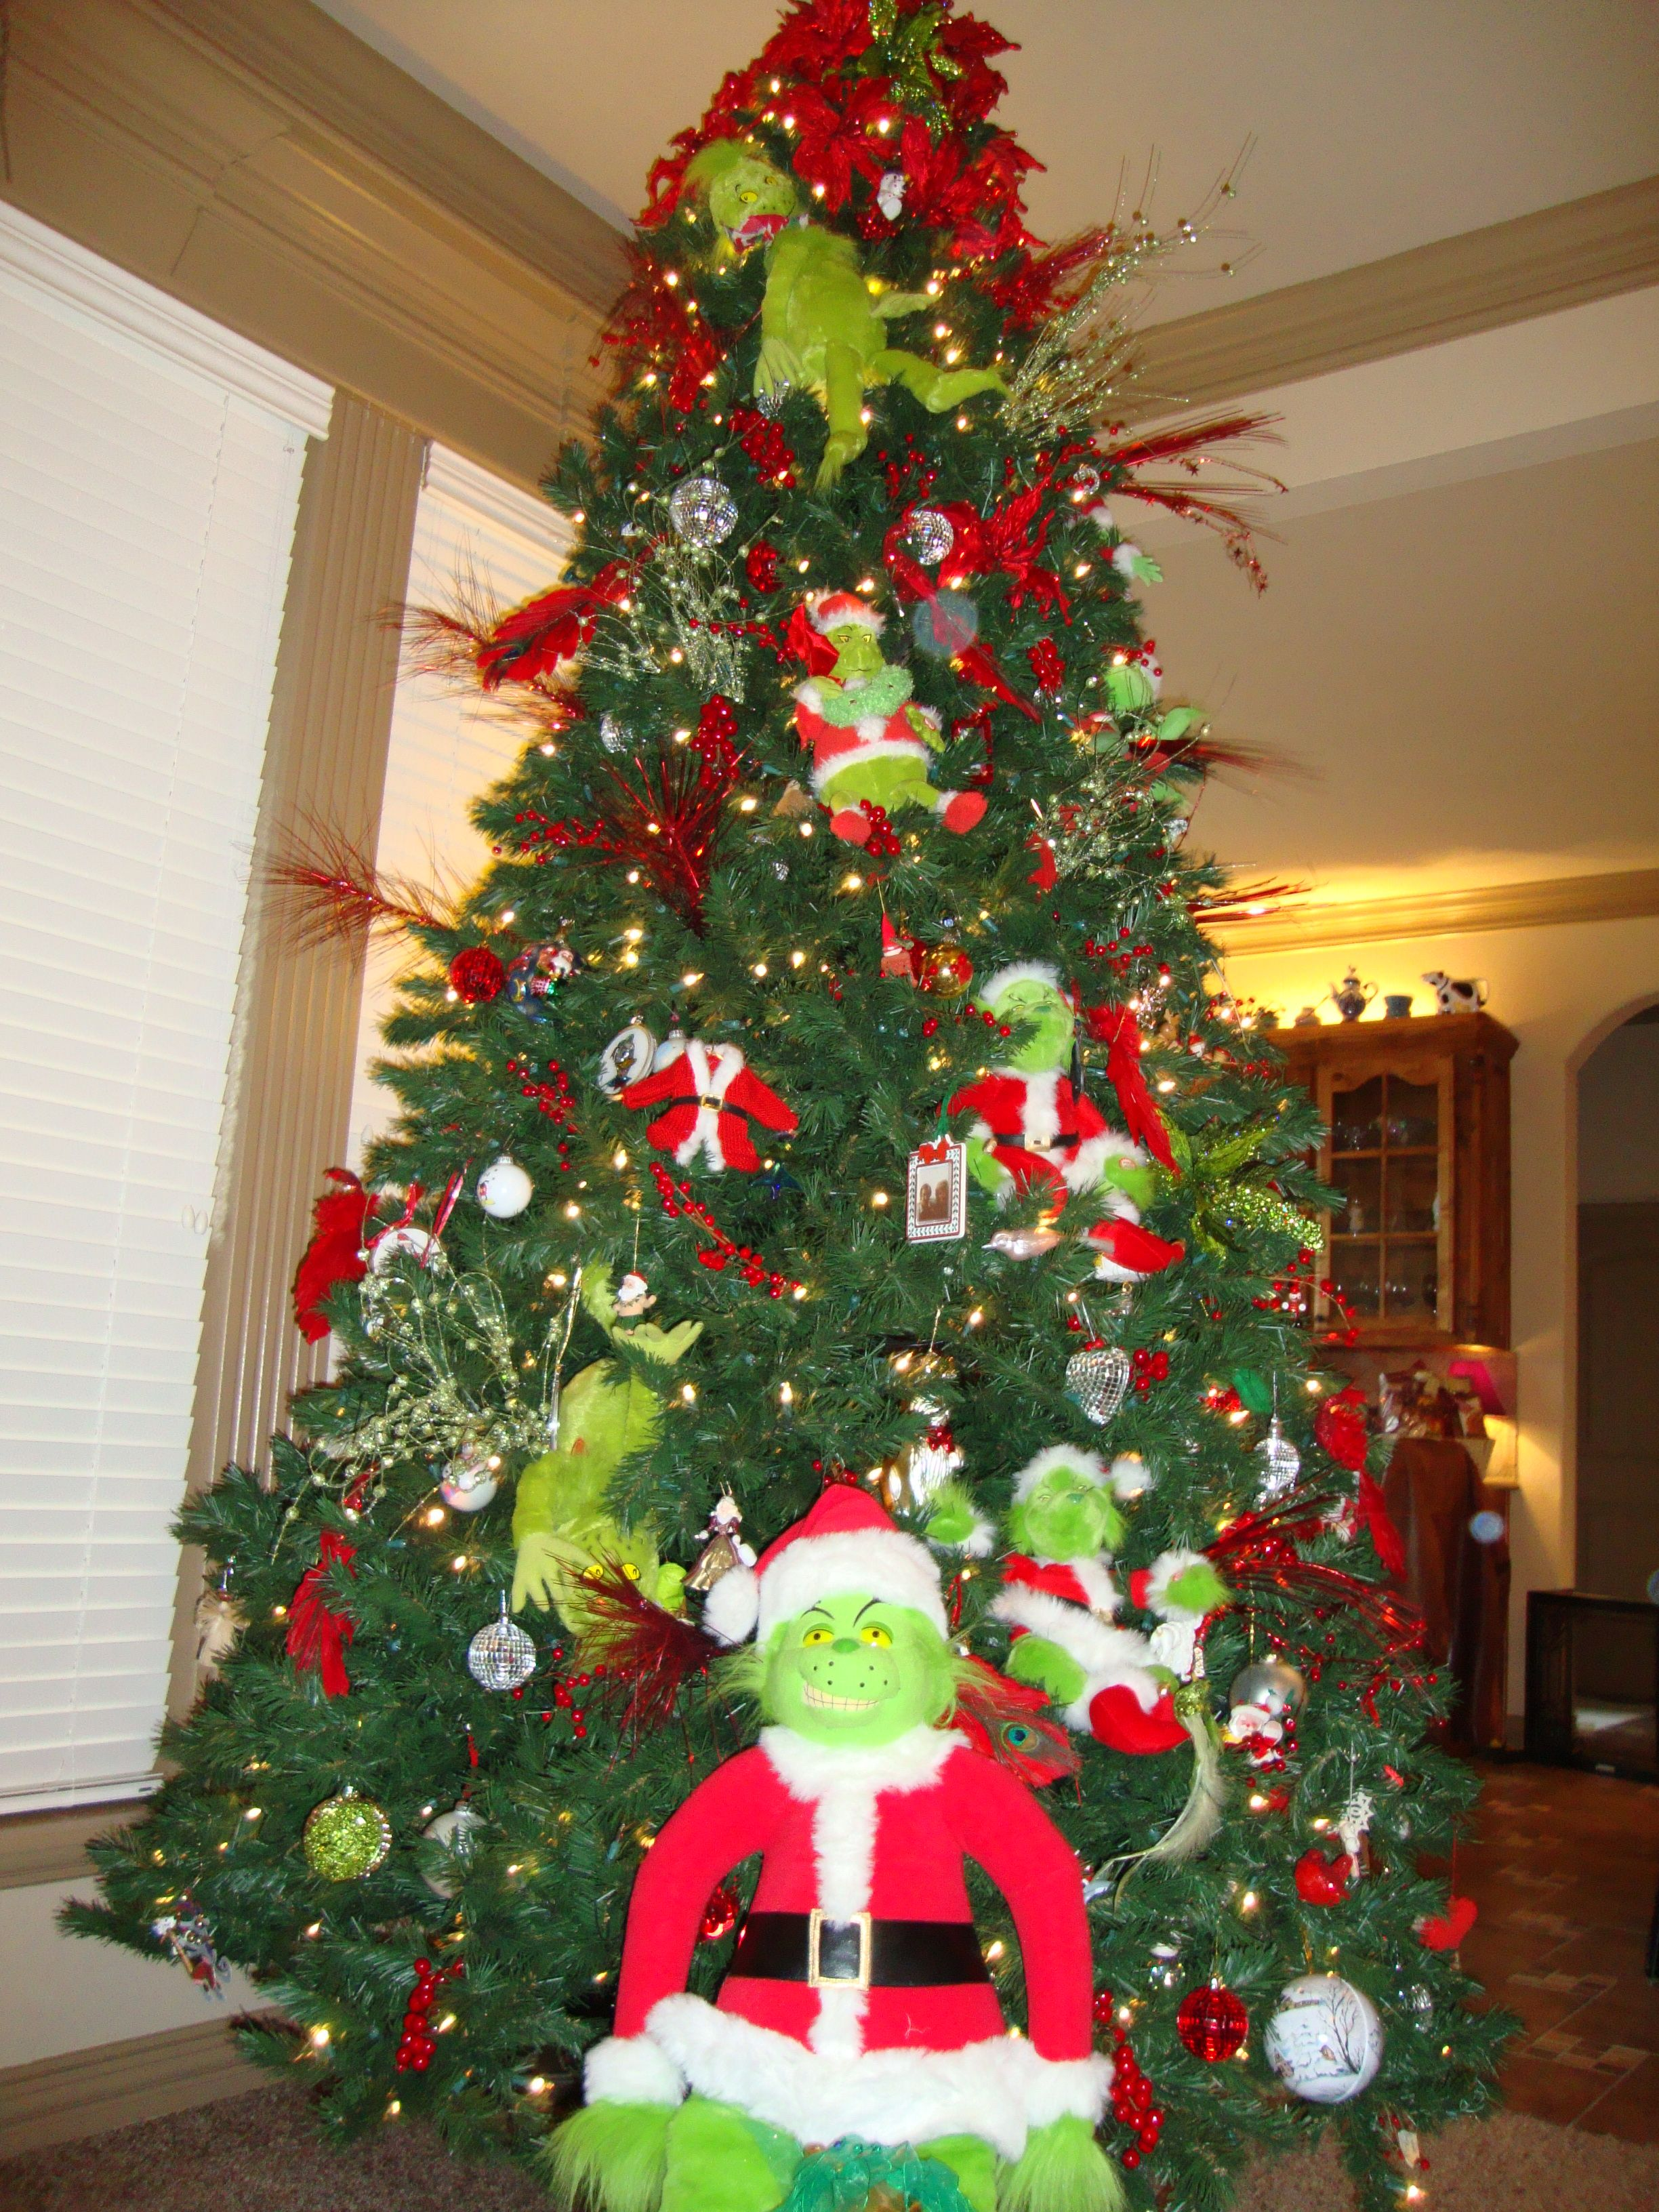 The Grinch Christmas Tree Decorations.9ft Grinch Tree Grinch Christmas Tree Christmas Tree